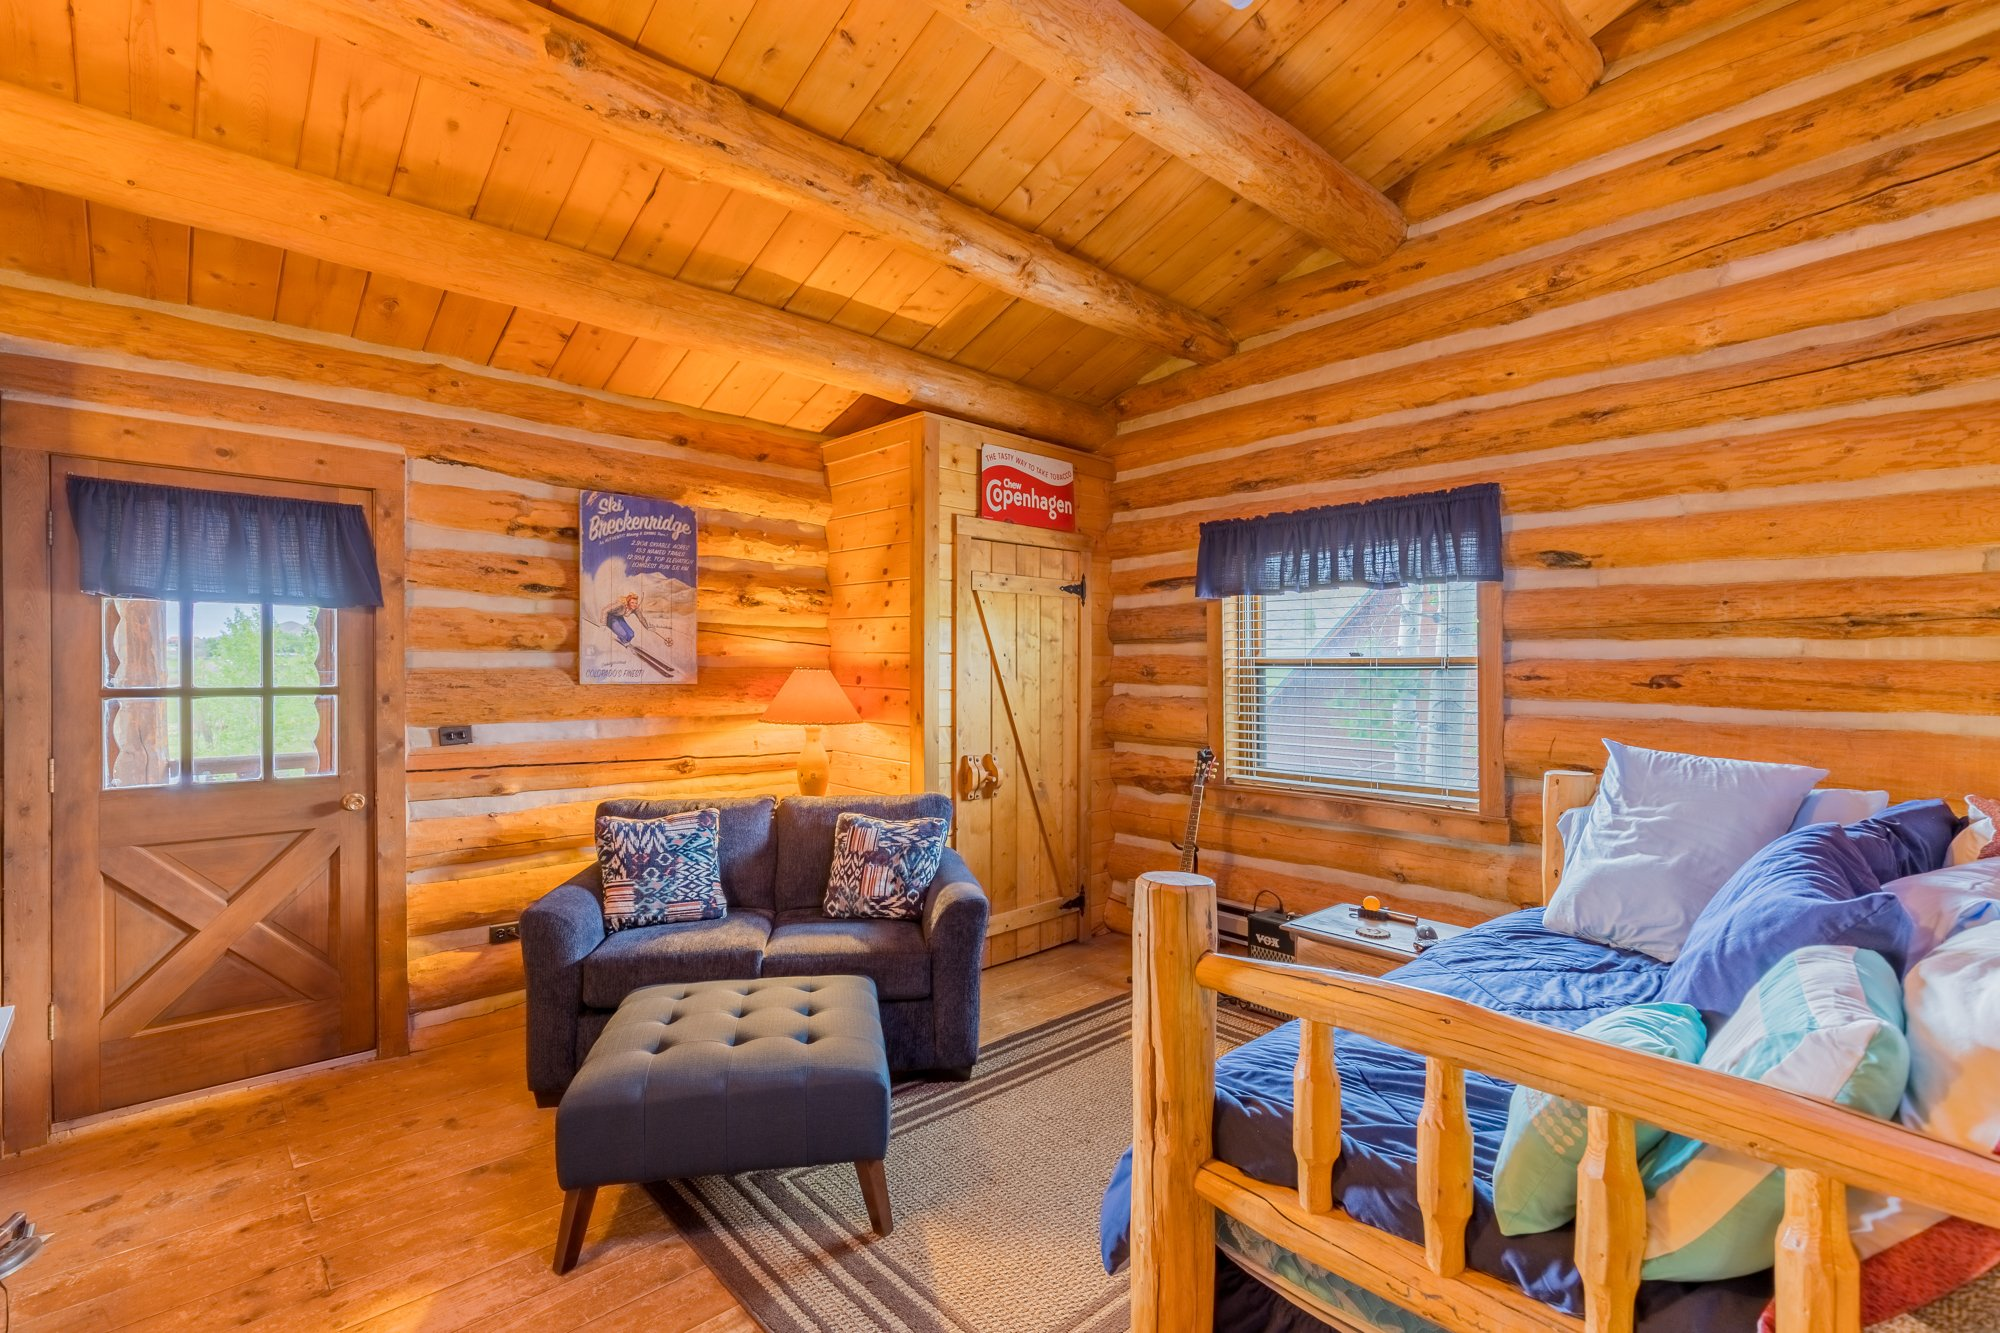 Upstairs Family Room - 21770 Uncompahgre Rd Montrose, CO 81403 - Atha Team Country Real Estate